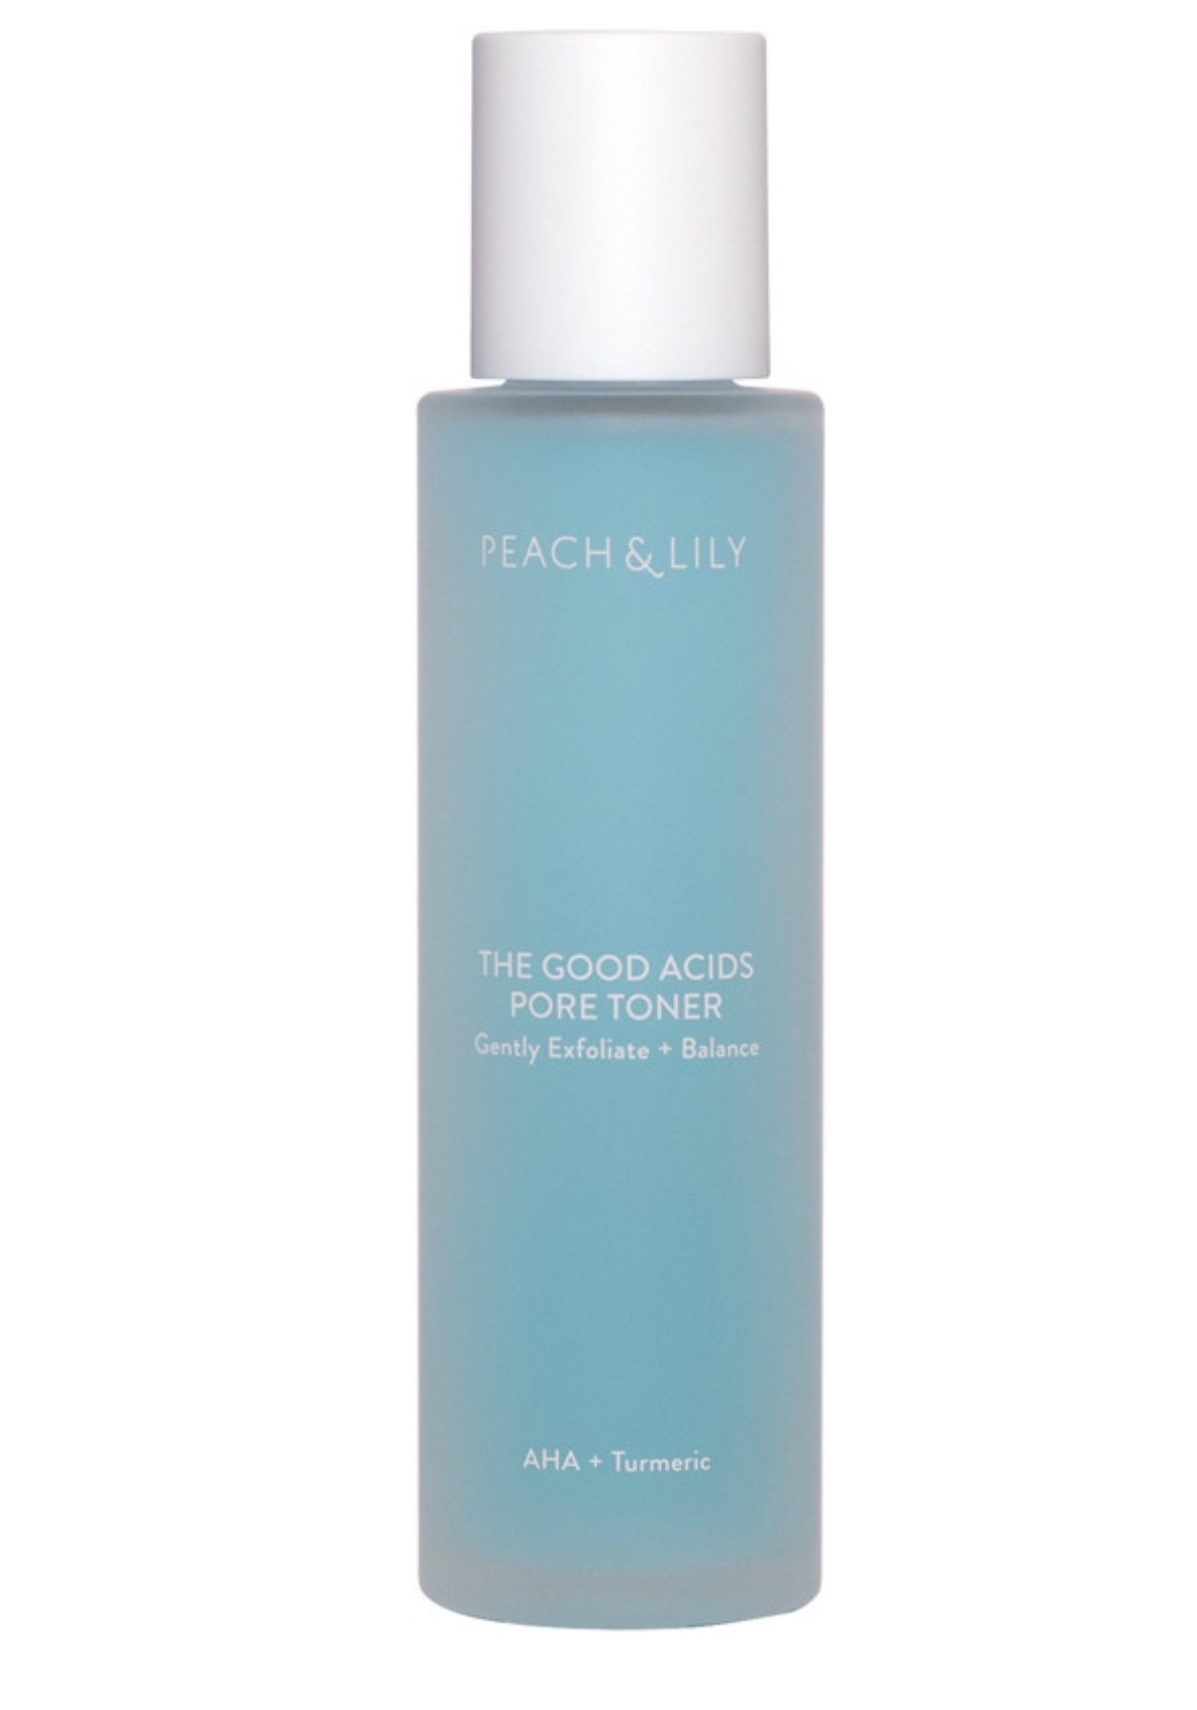 Peach & Lily The Good Acids Pore Toner